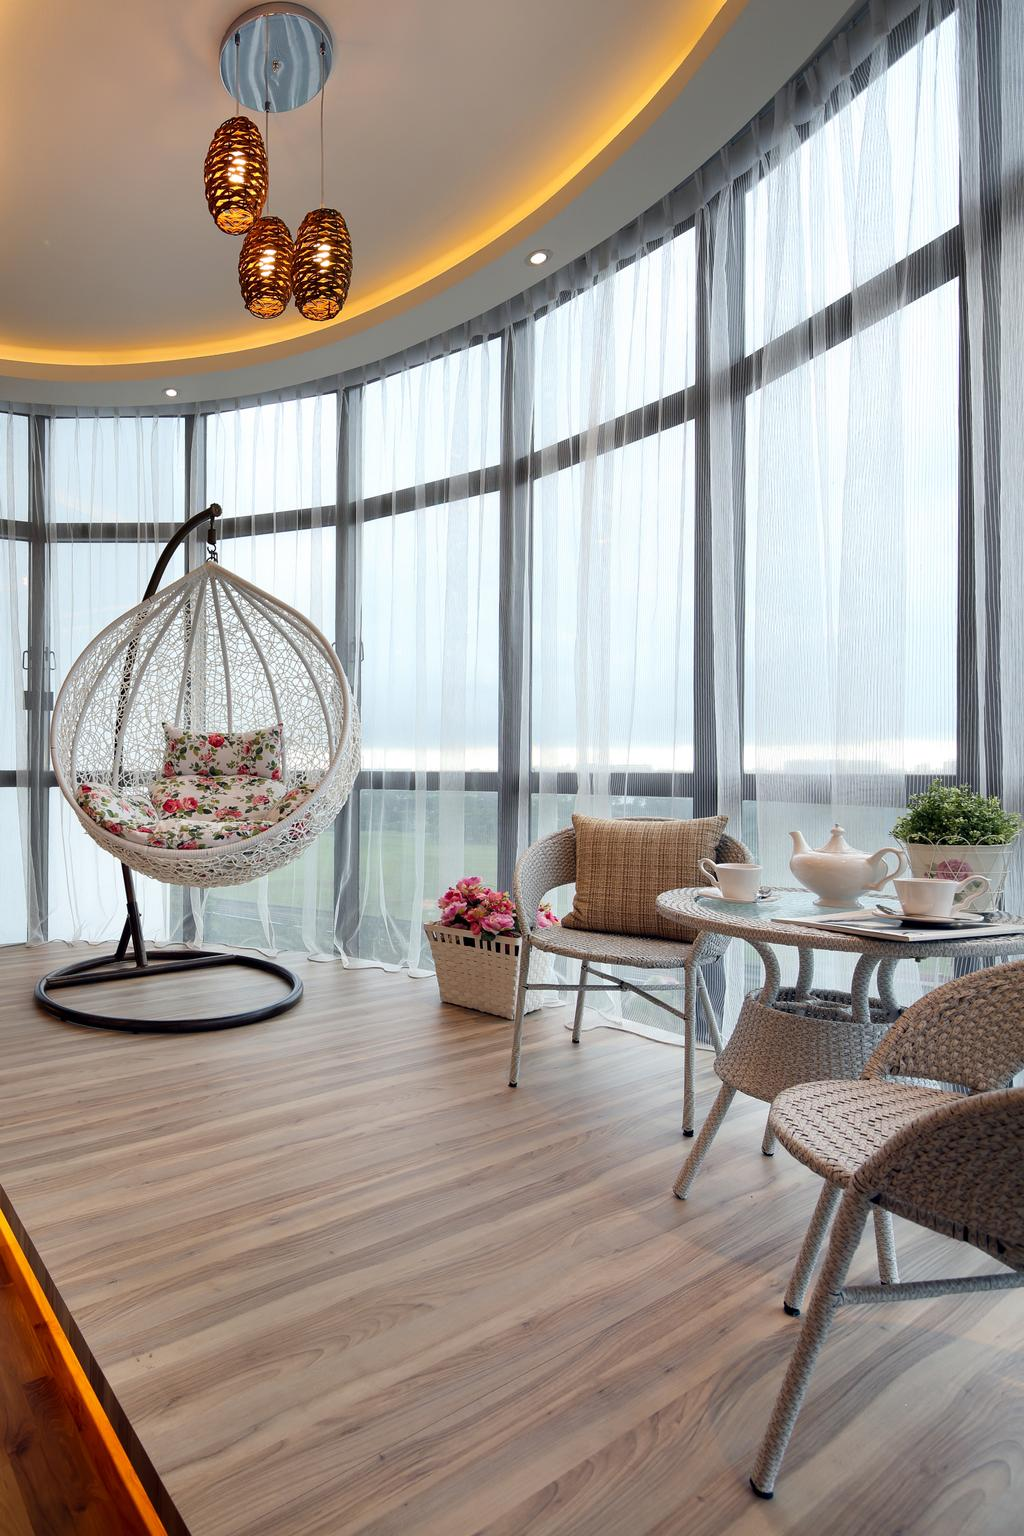 Contemporary, Condo, Living Room, Parc Oasis, Interior Designer, Urban Design House, Wooden Floor, Hanging Lights, Lounge Chair, Mini Circular Table, Hanging Rattan Chair, Glass Panels, Classy, Modern